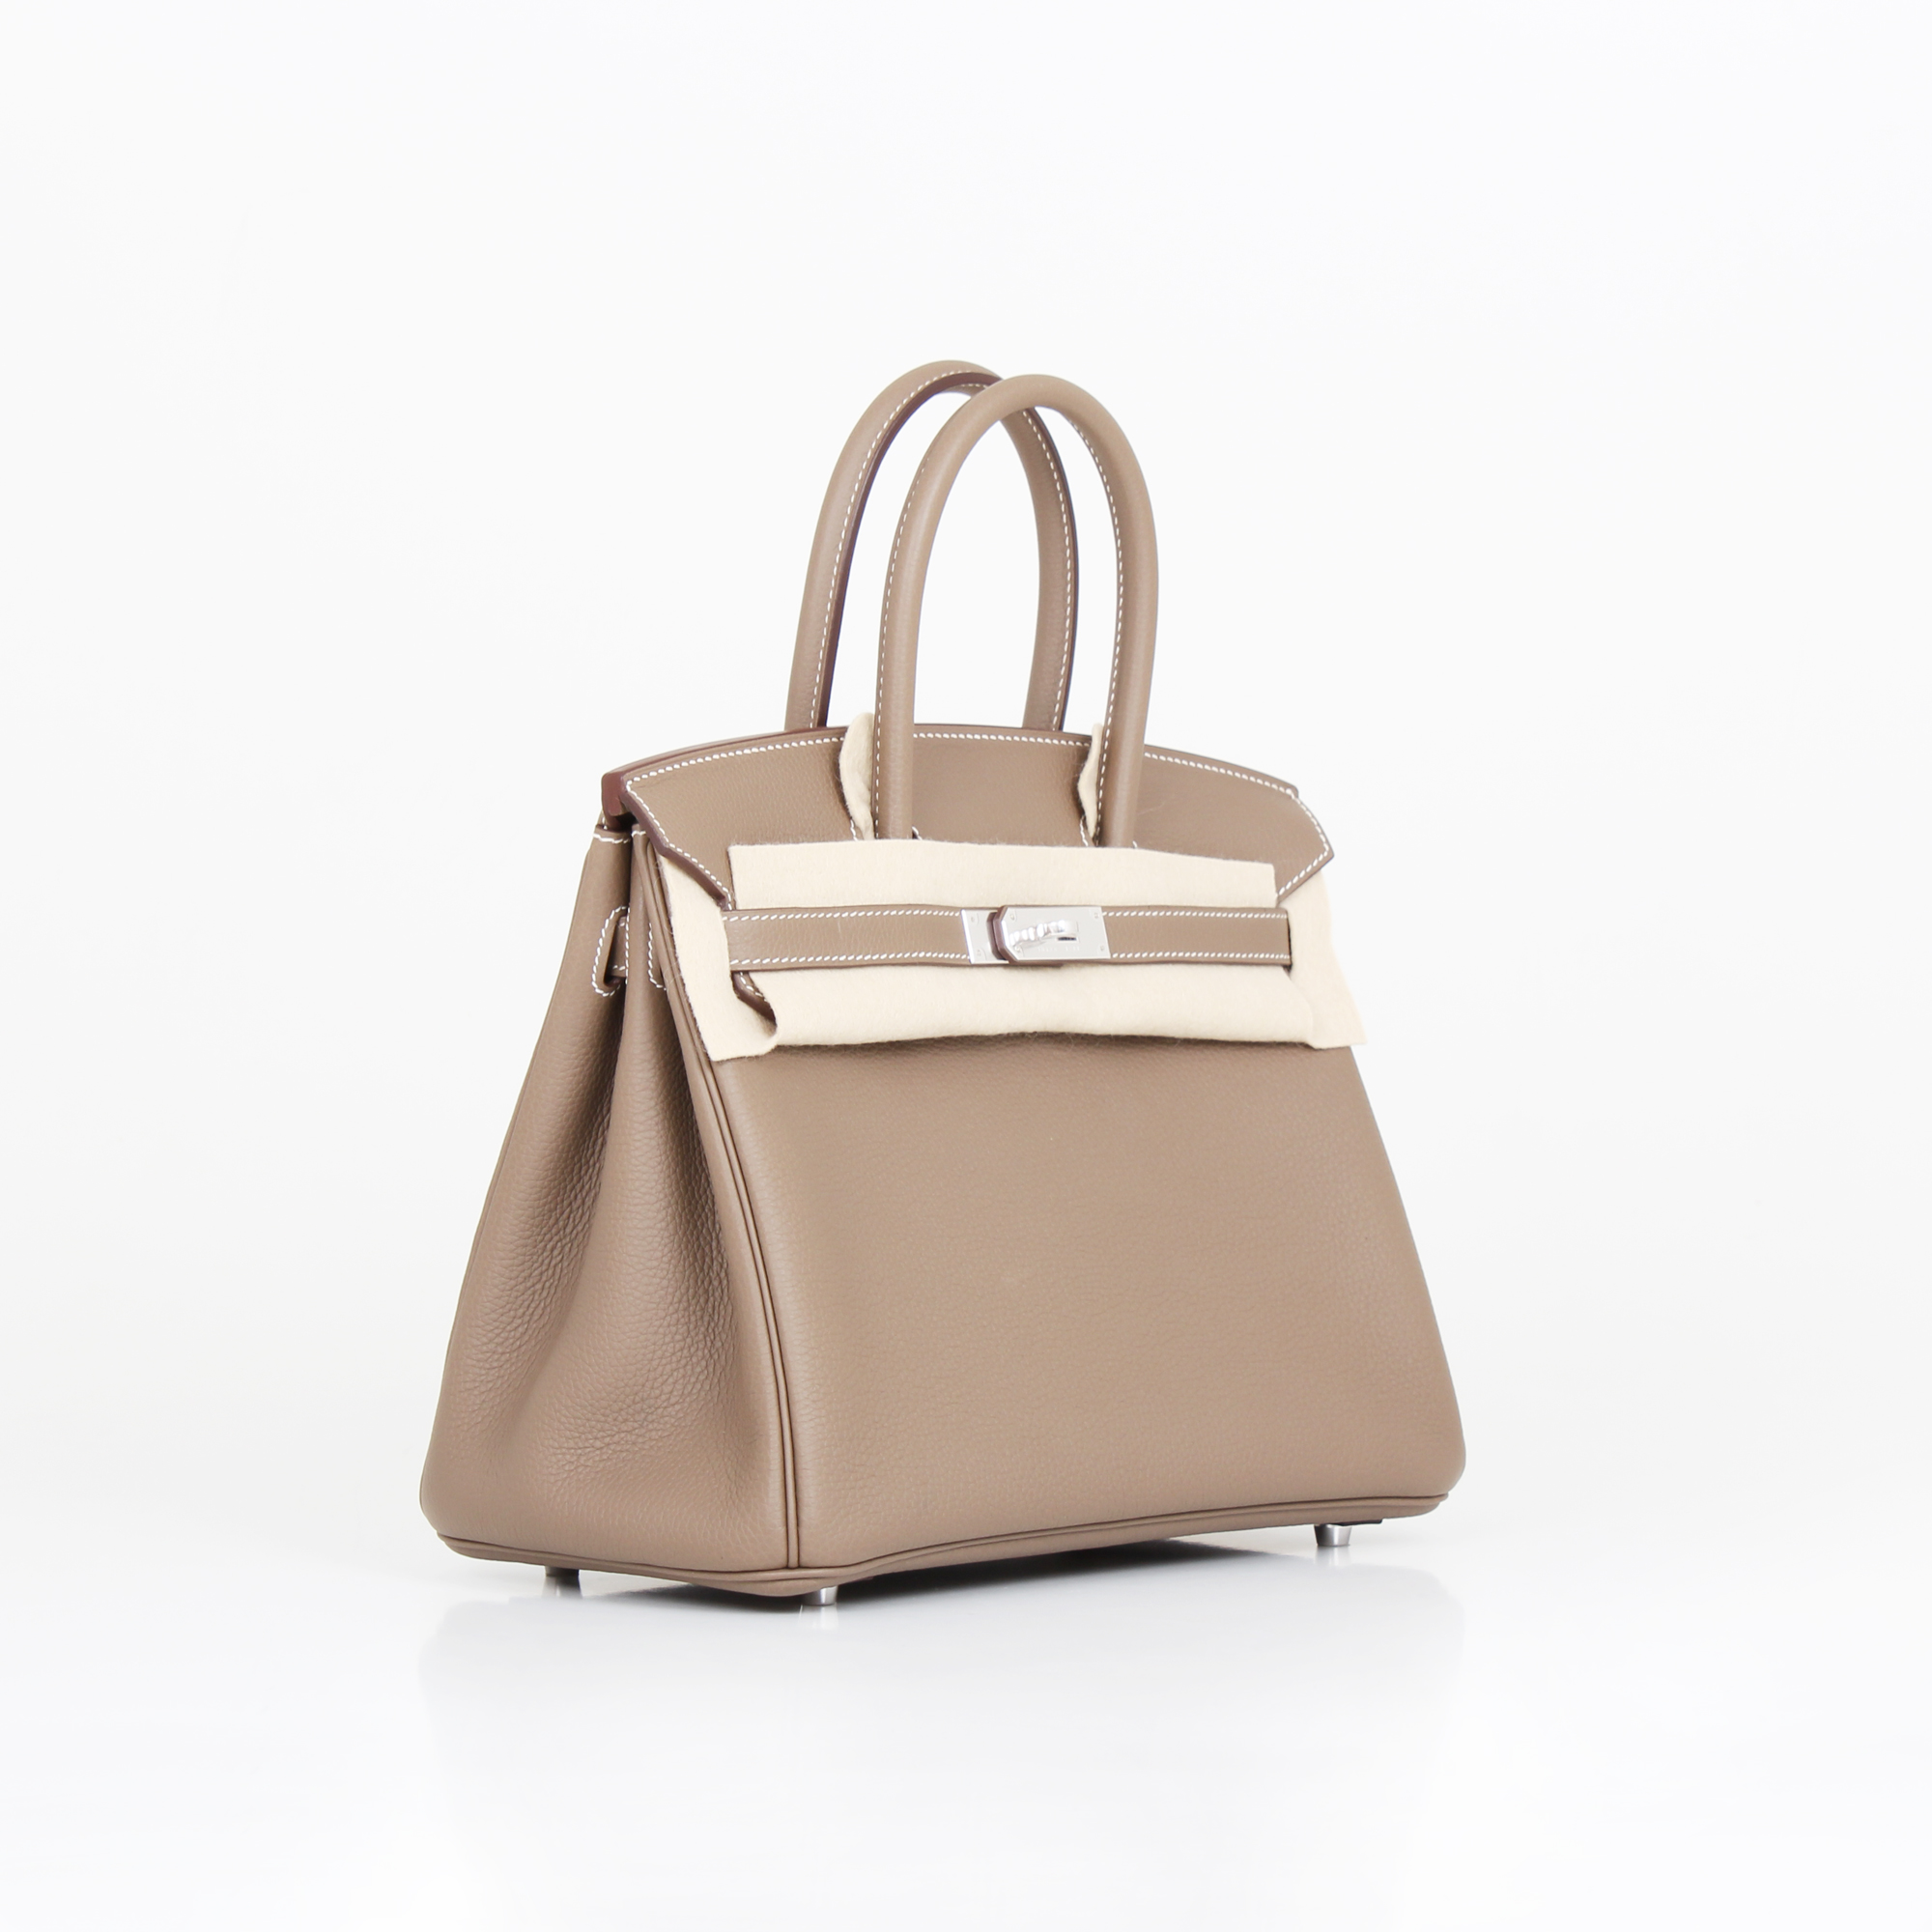 General image of hermes birkin bag taupe togo with protective cloth